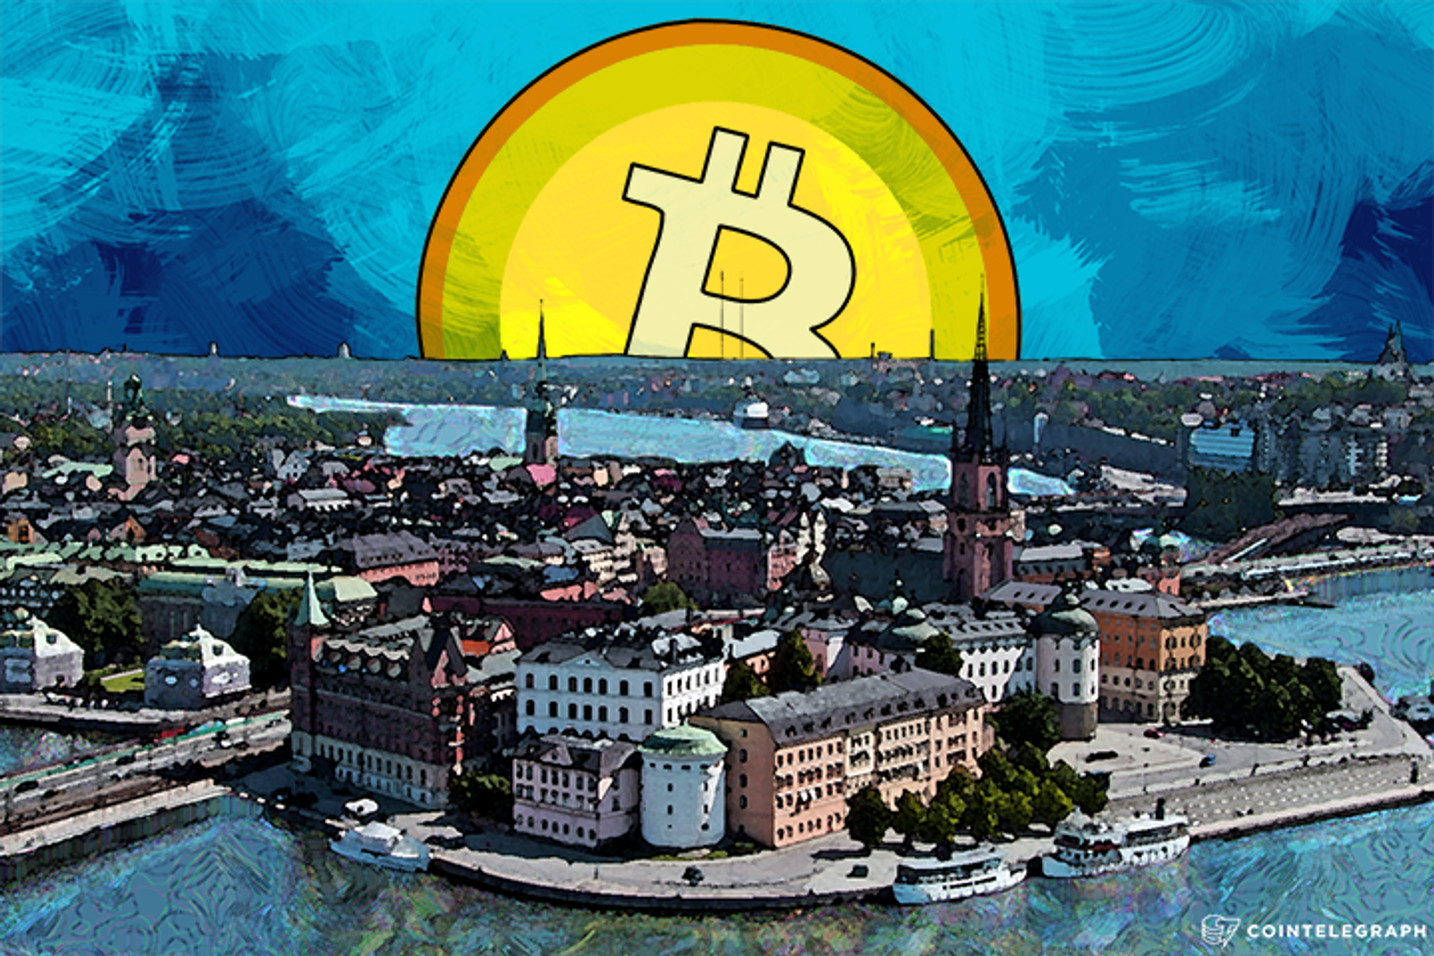 World's Biggest Consumer-Oriented Bitcoin Event Coming to Stockholm